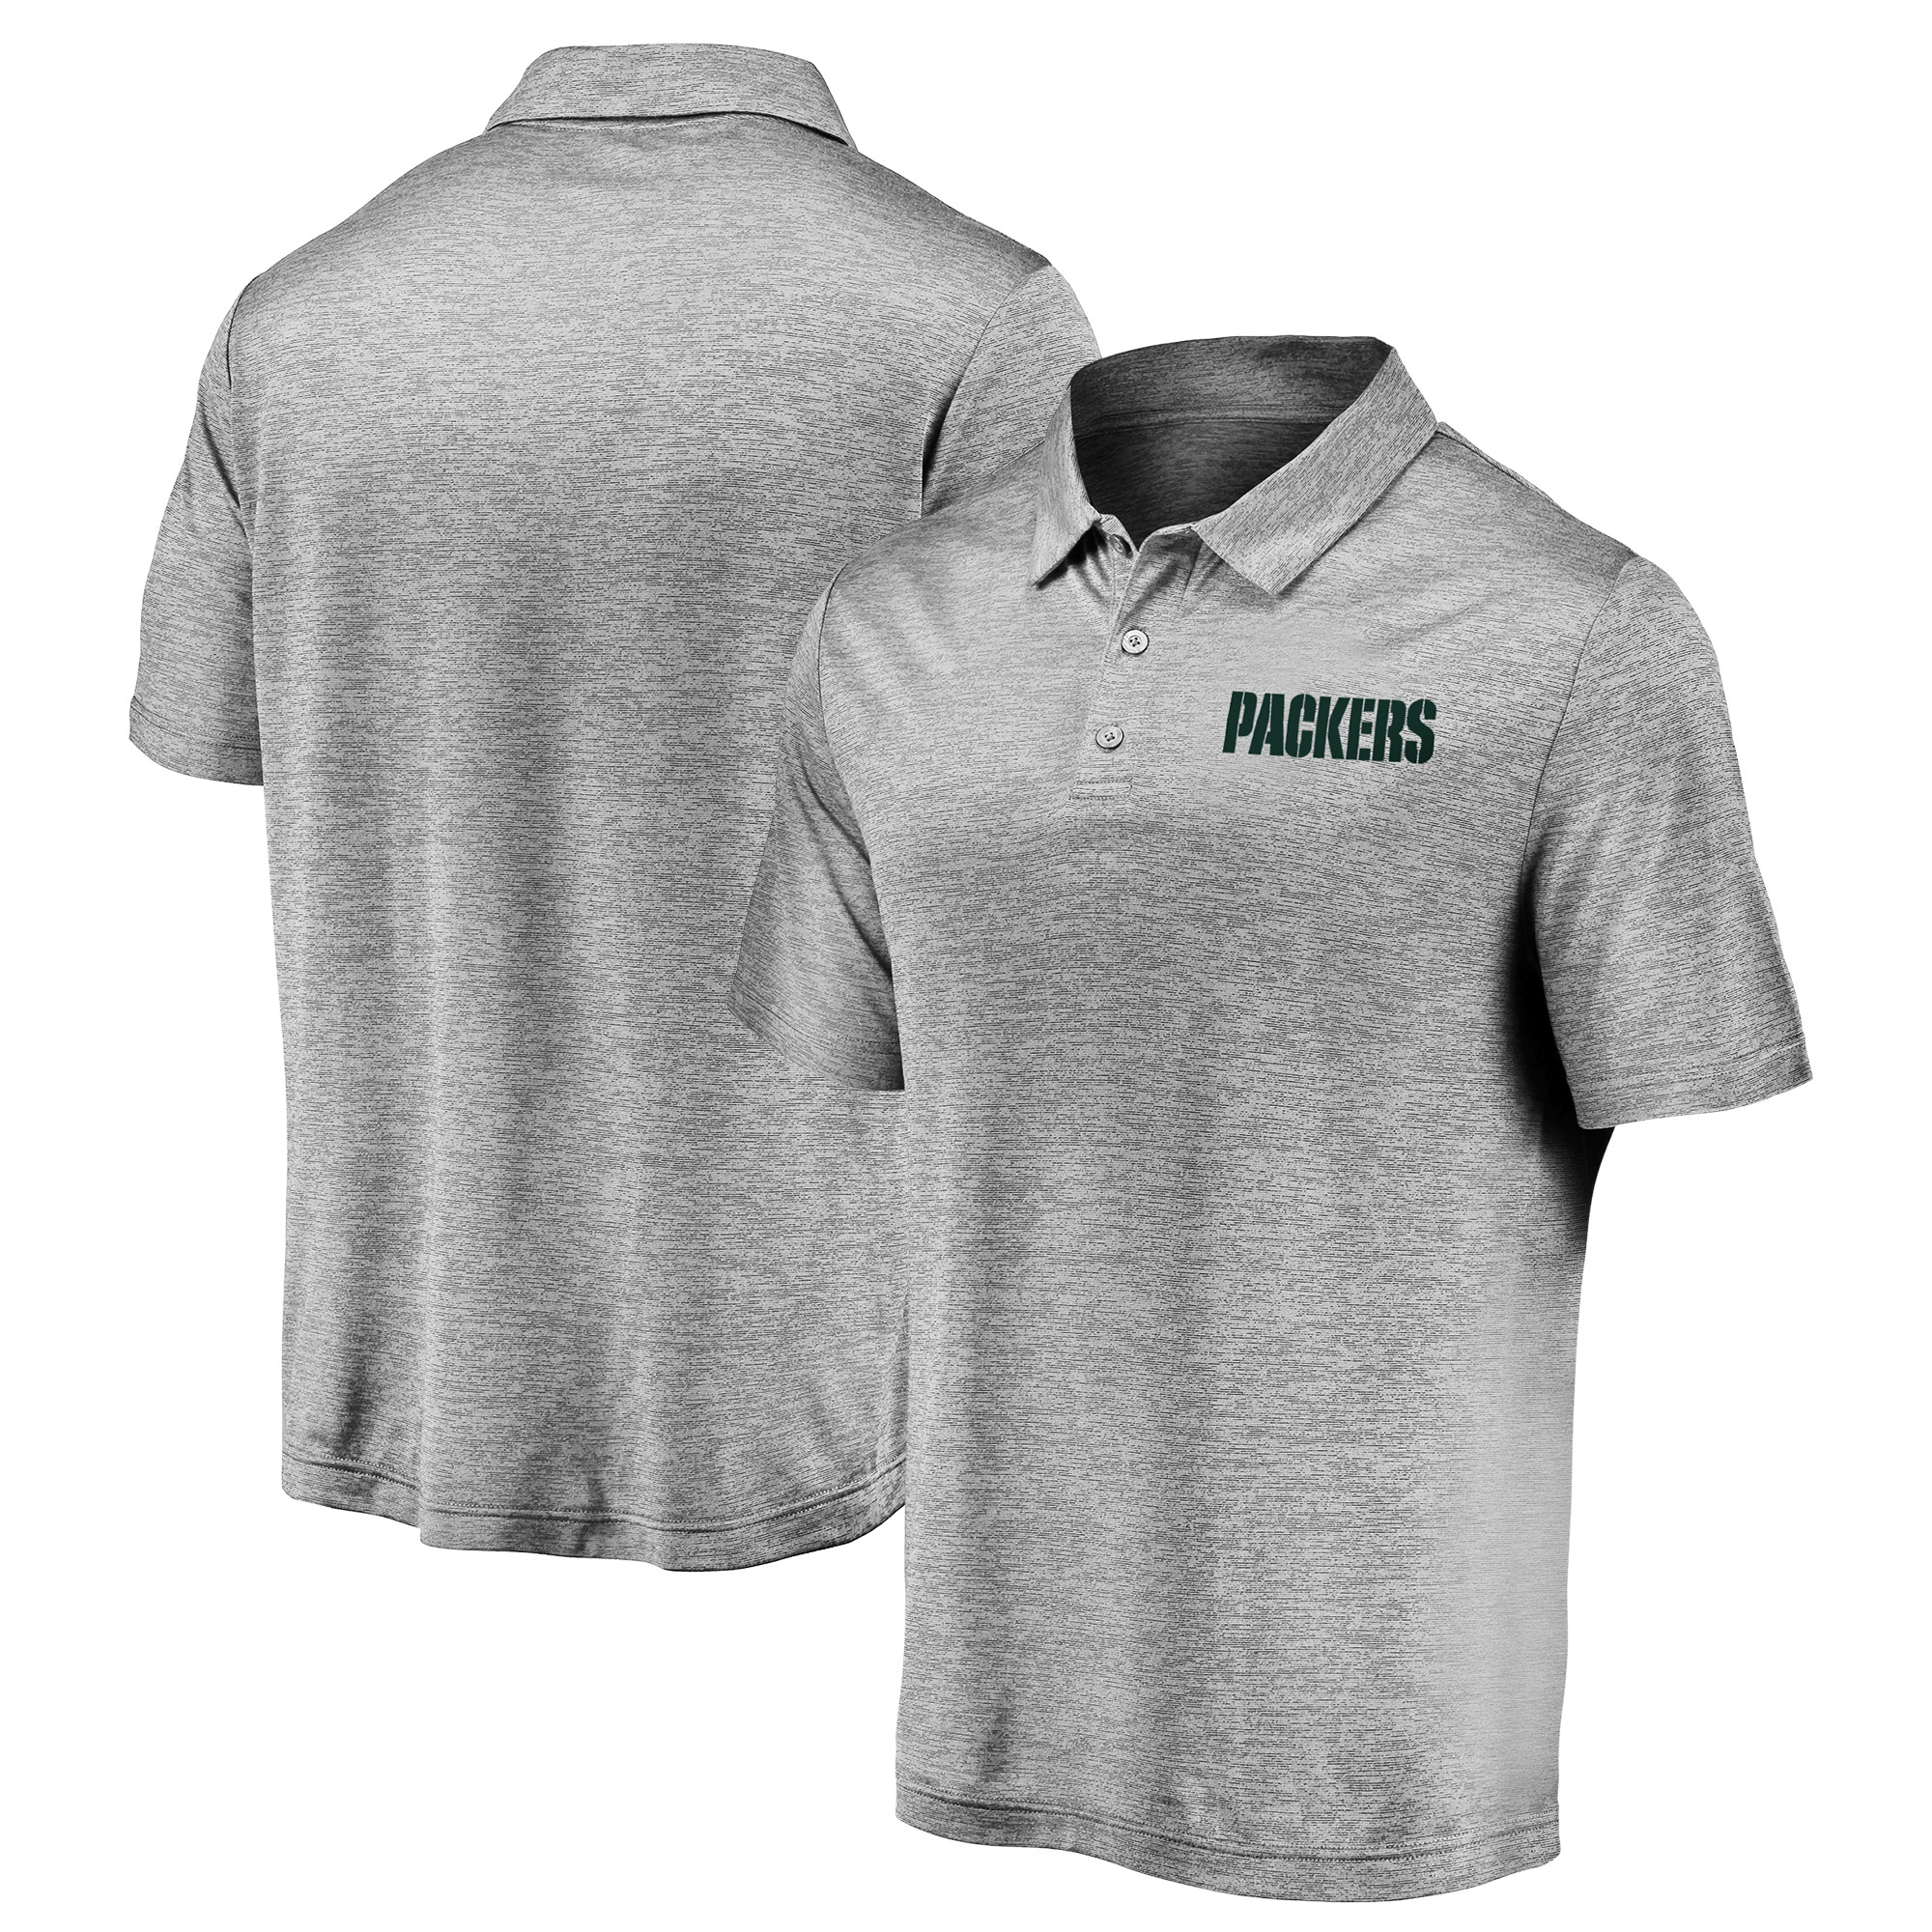 NFL Green Bay Packers Cut And Sew Rugby Shirt Black Mens Fanatics Branded.